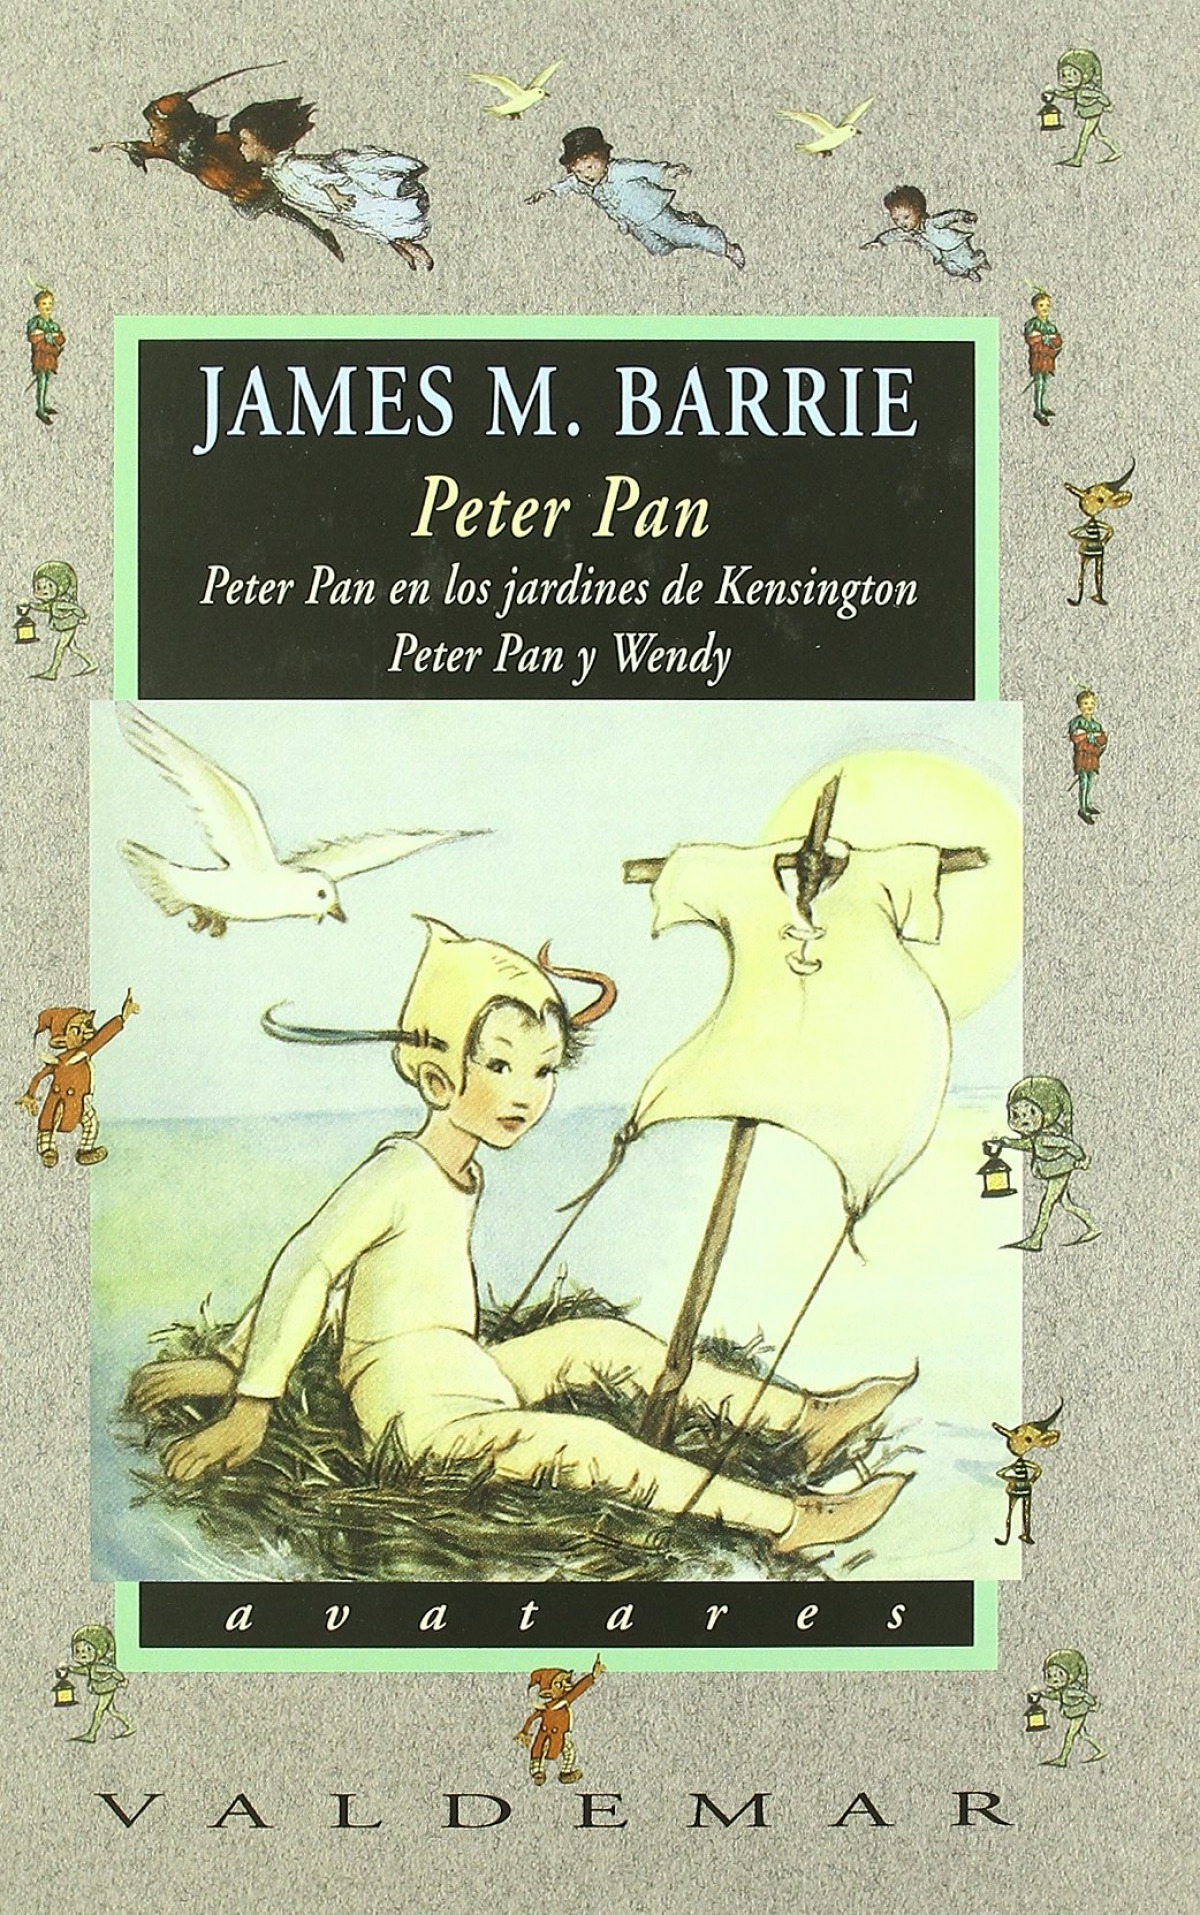 Peter Pan Peter pan en los jardines de kensington & peter pan y wendy - Barrie, James M.